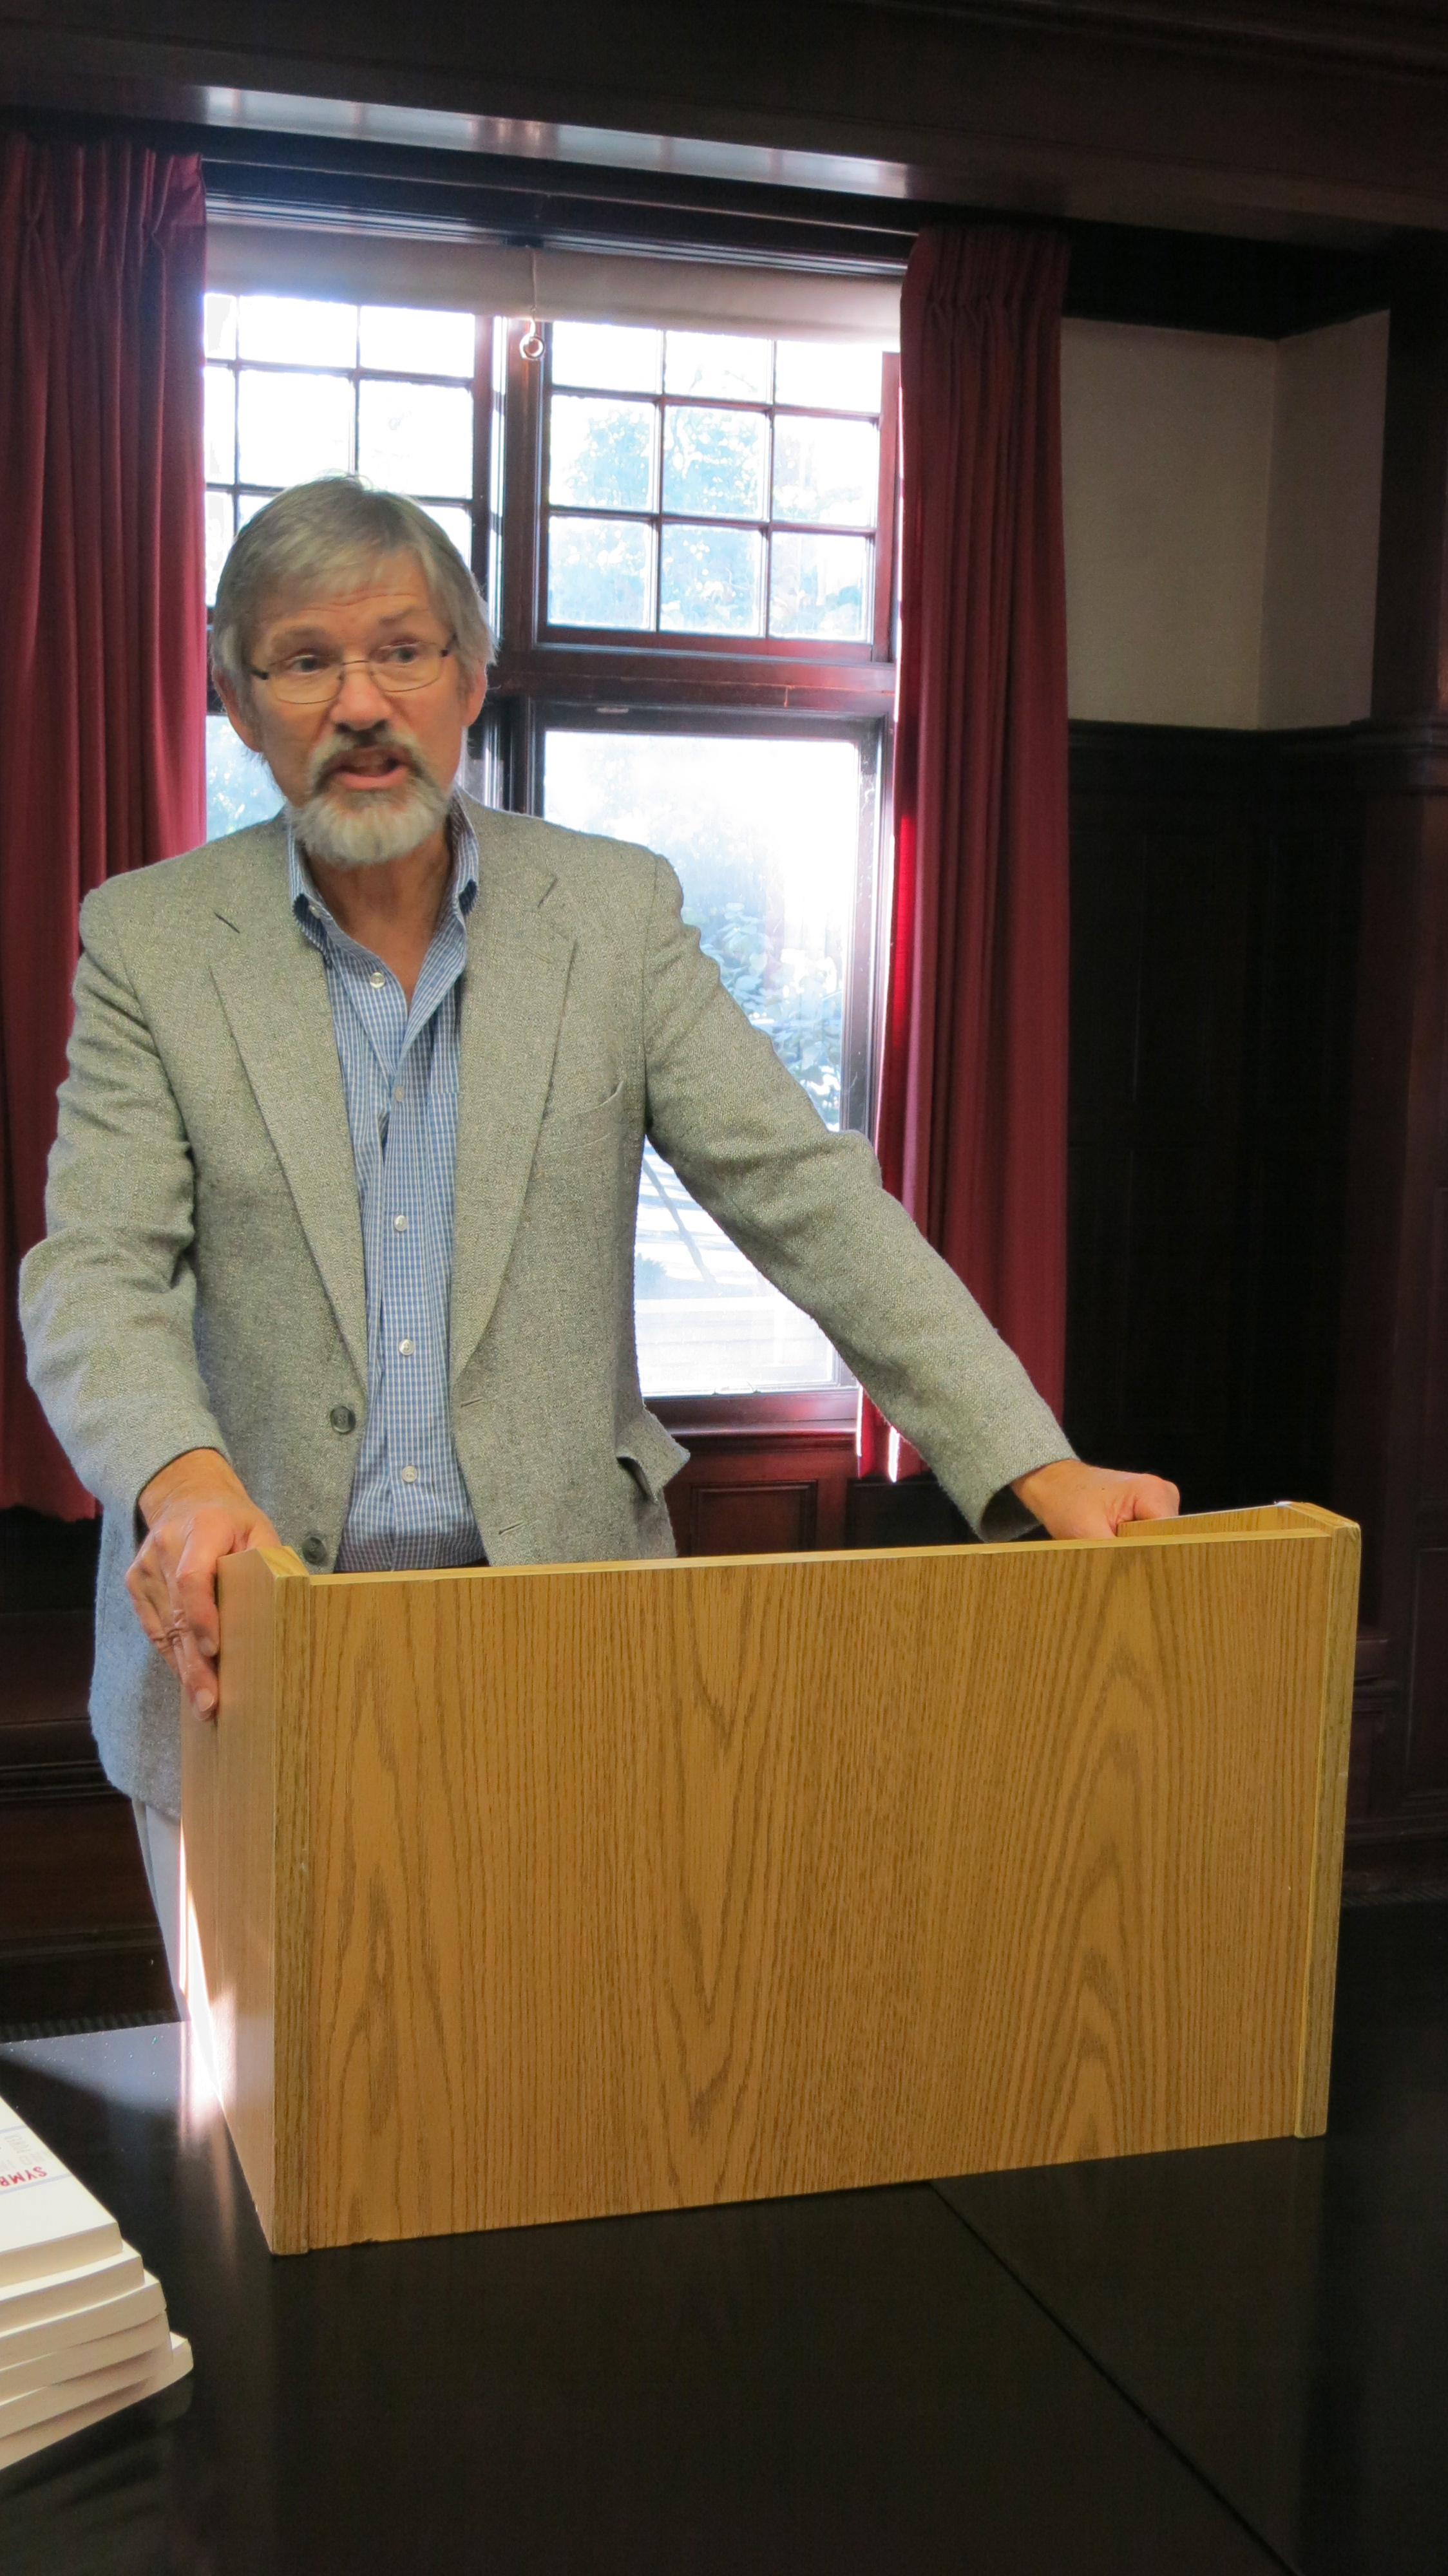 Spc Hosts Celebration Of Professor David Swartzs Symbolic Power